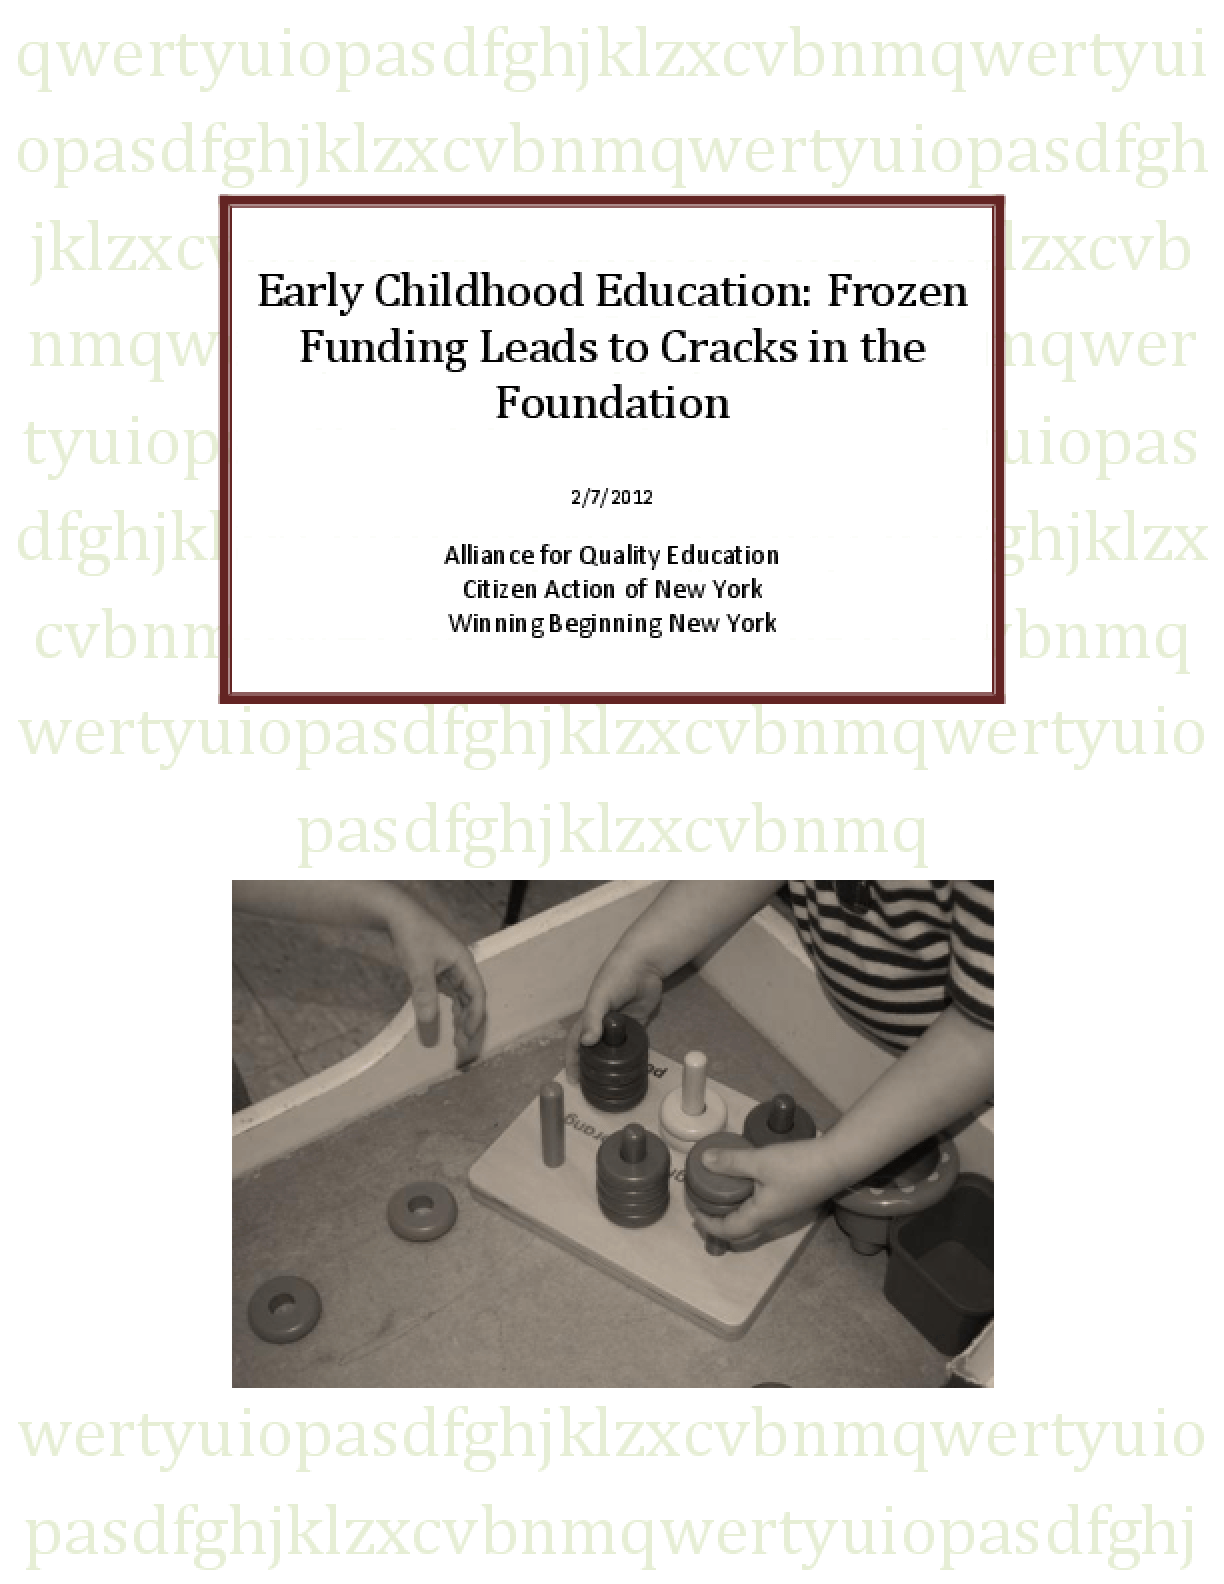 Early Childhood Education: Frozen Funding Leads to Cracks in Foundation